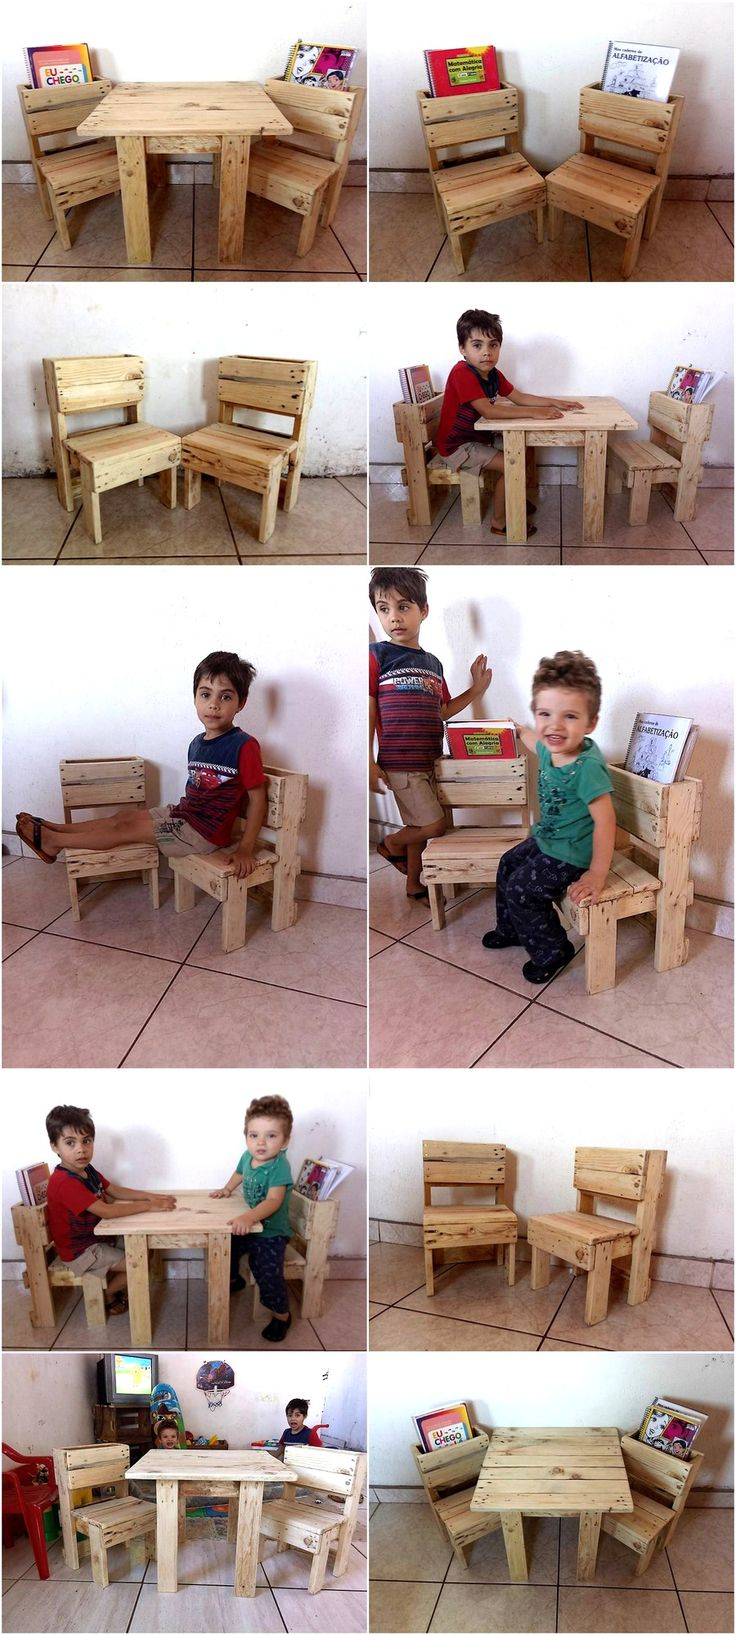 Jams kids study tables study tables for kids online in best designs - Kids Study Furniture Made With Pallets